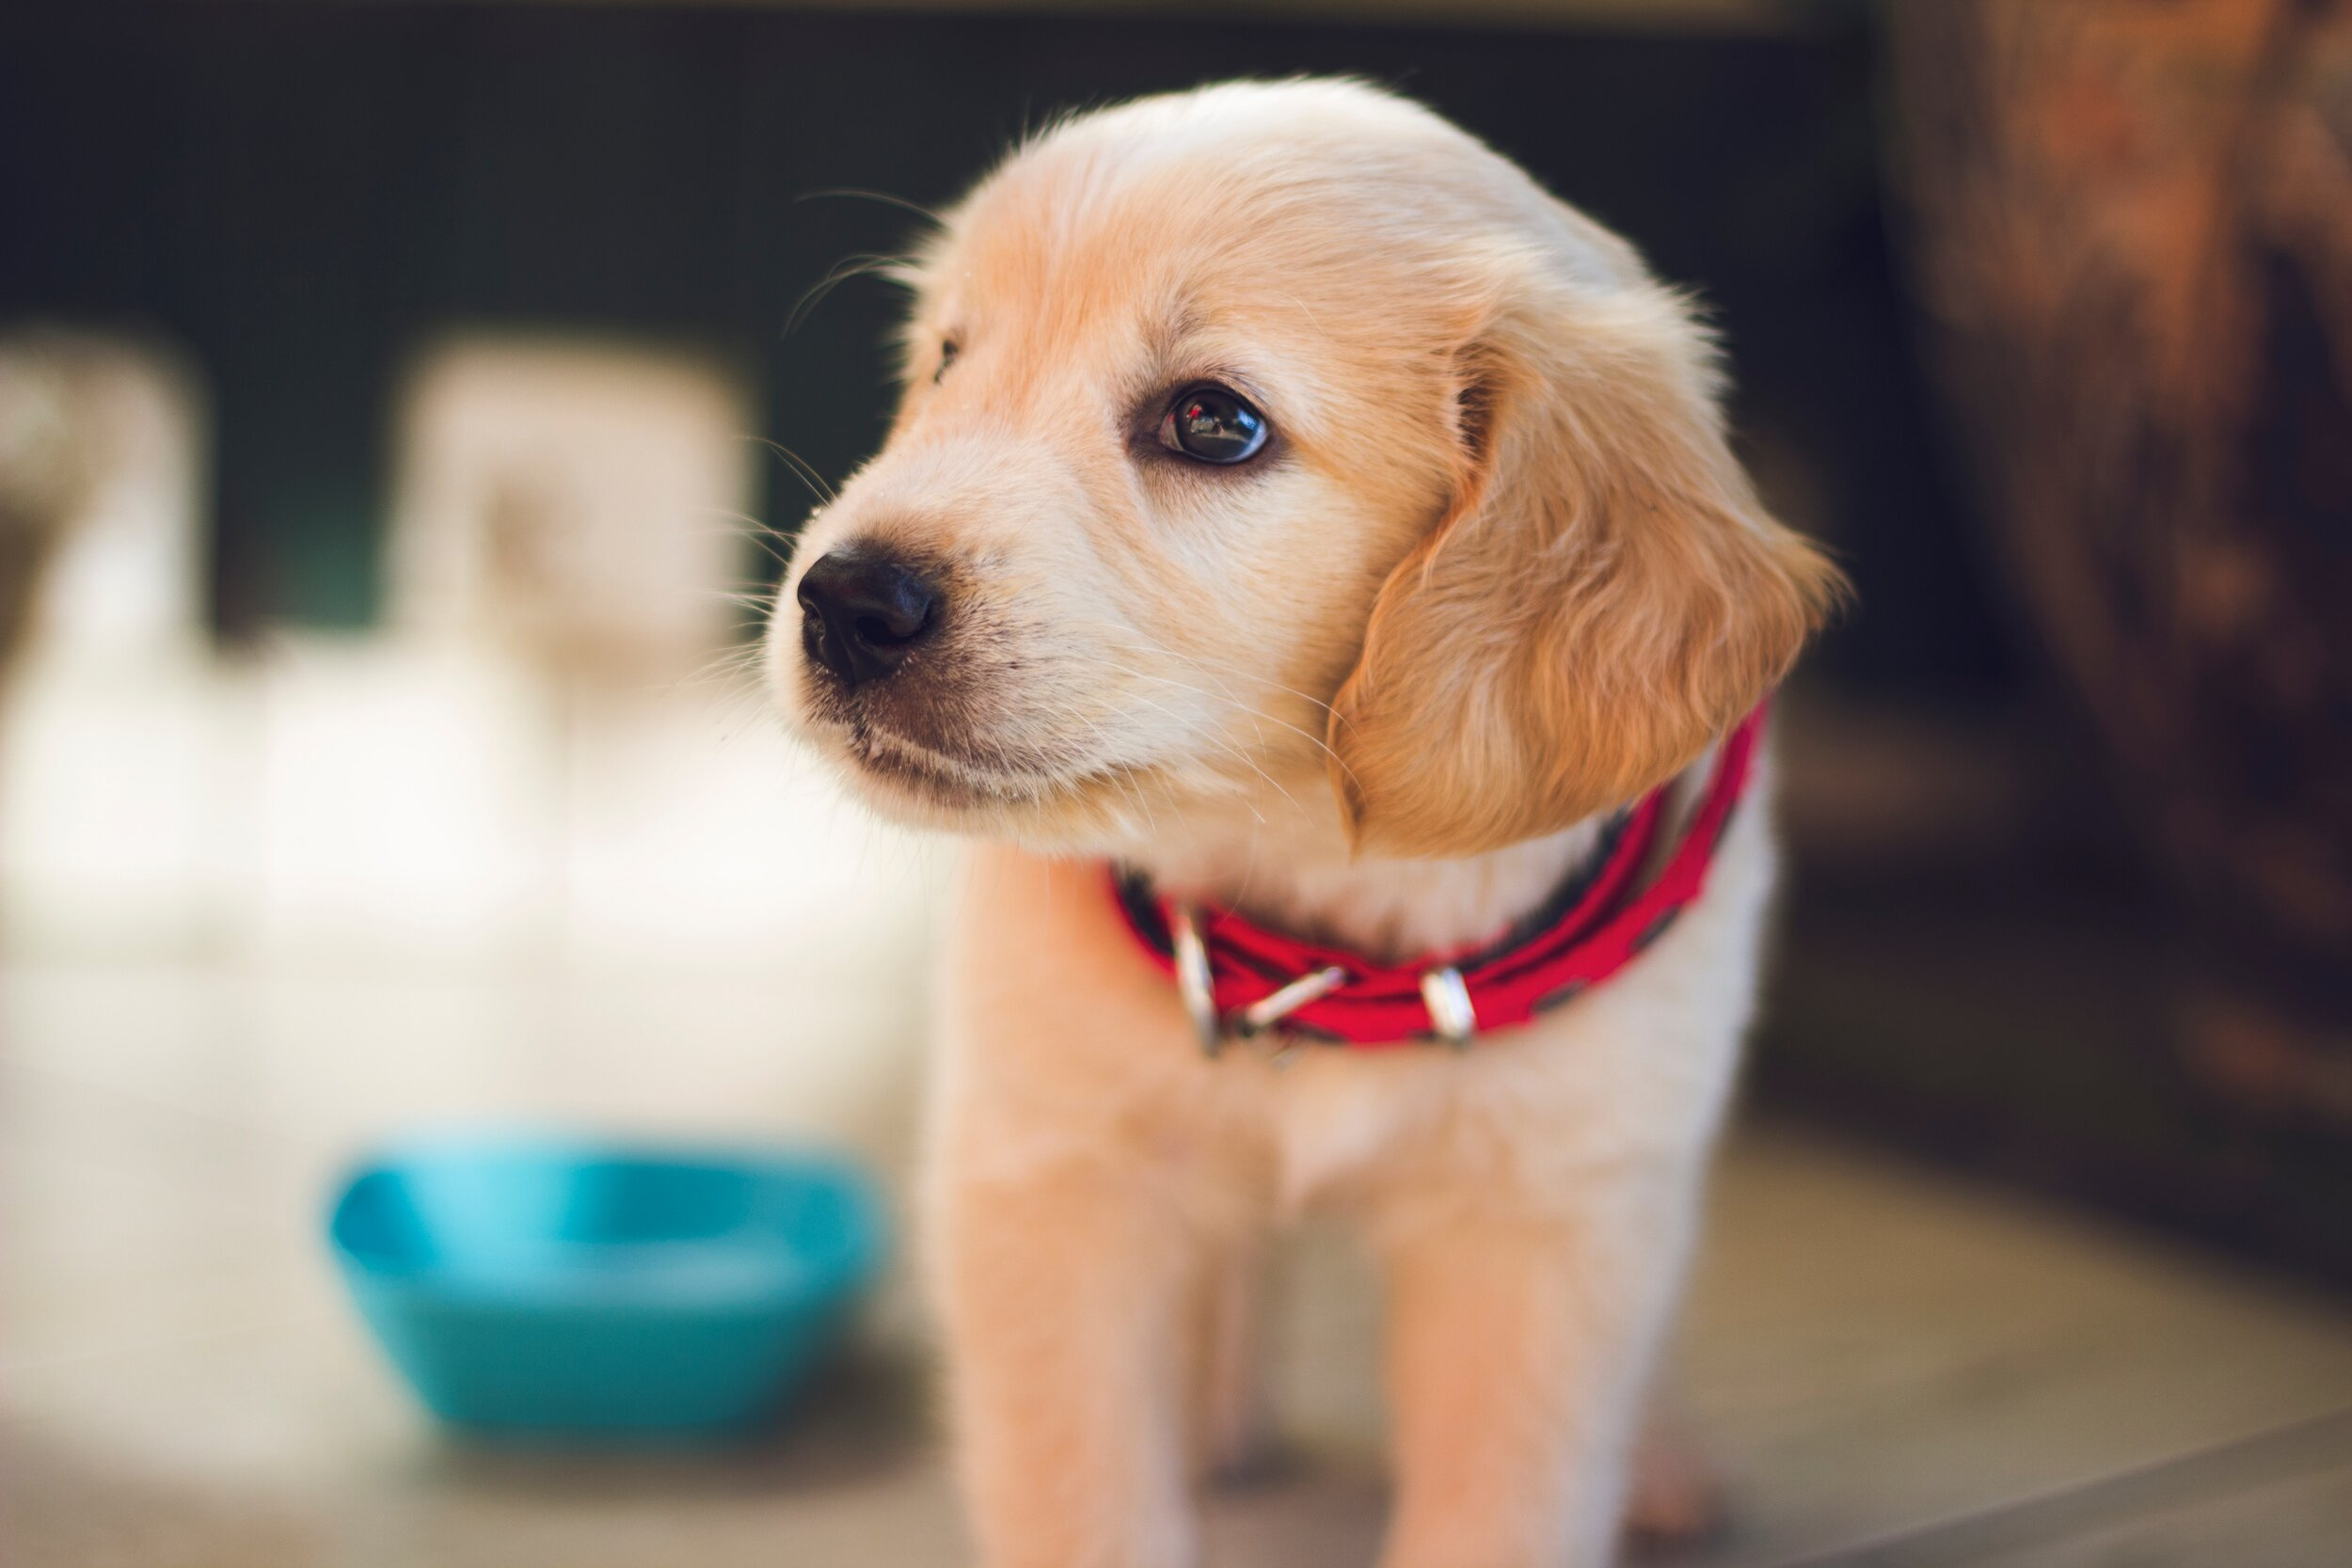 The Market - The Lowndown On A Healthy Diet For Your Dog